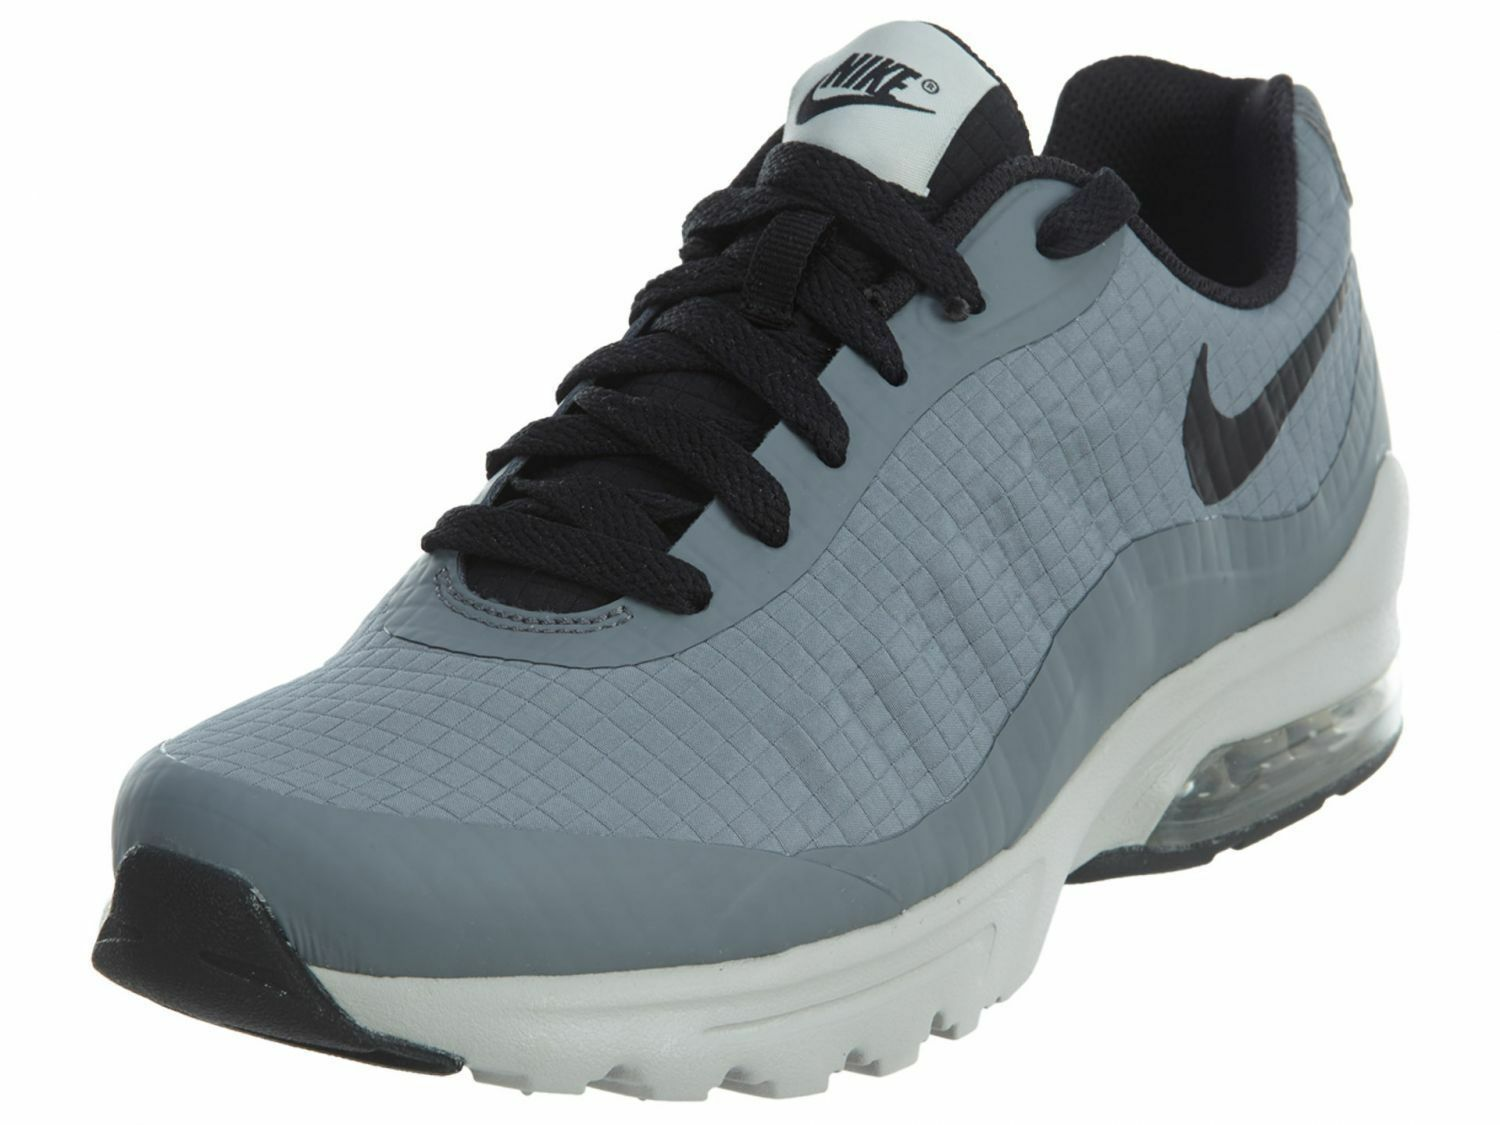 NIKE AIR MAX INVIGOR SE LOW RUNNING MEN SHOES COOL SMOKE 870614-001 SIZE 10 NEW